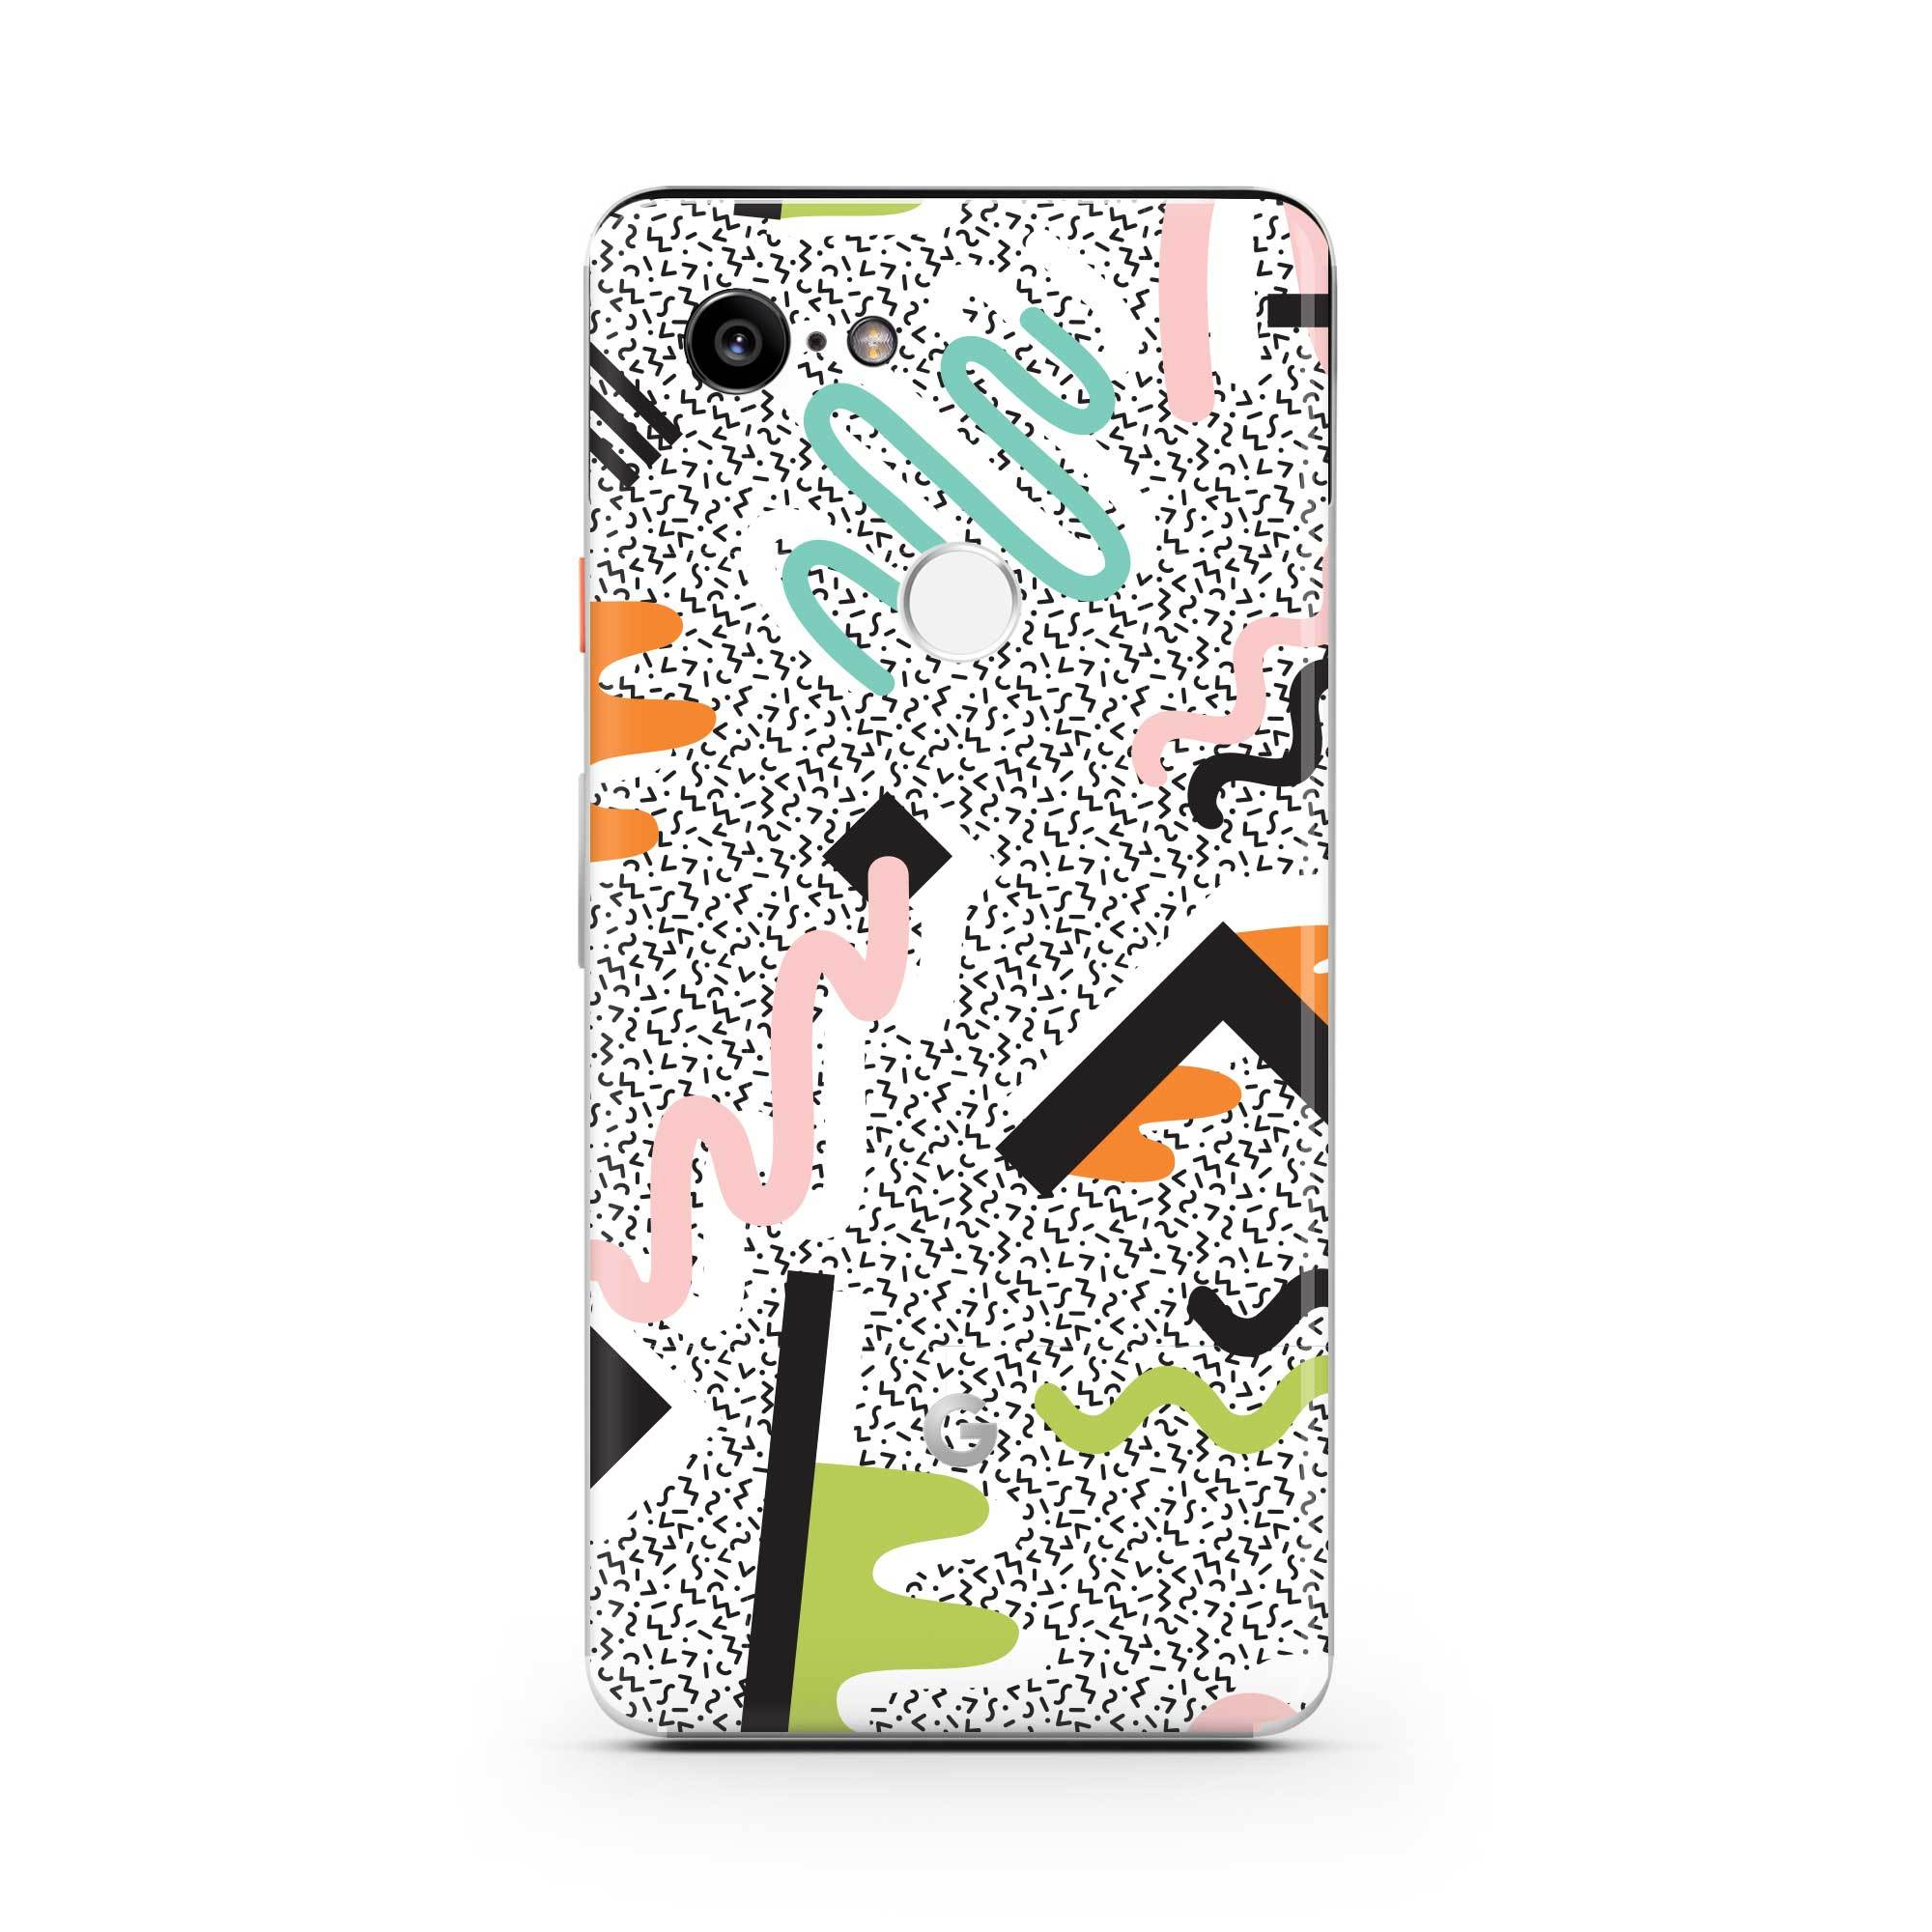 True Memphis Pixel 3 XL Skin + Case